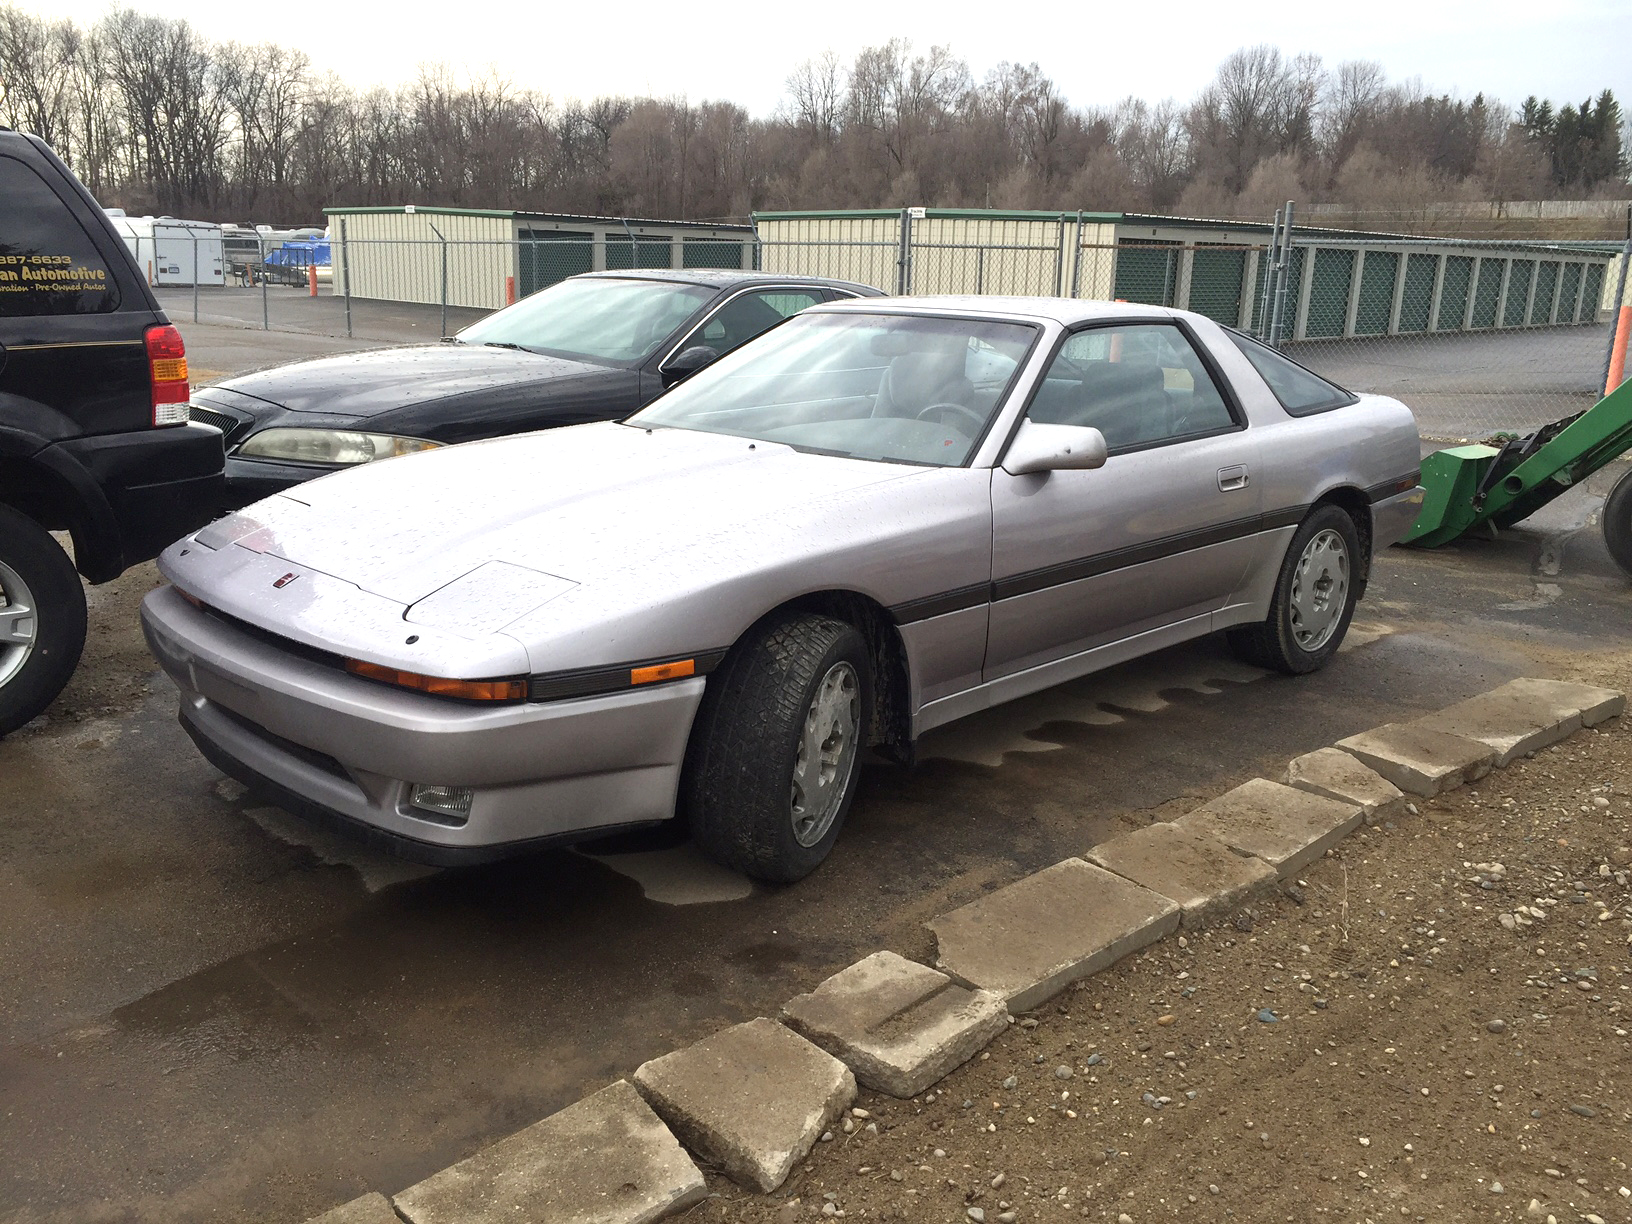 1988 TOYOTA Supra intercooled turbo 5-spd targa top 53k miles 3000cc rare find 4995